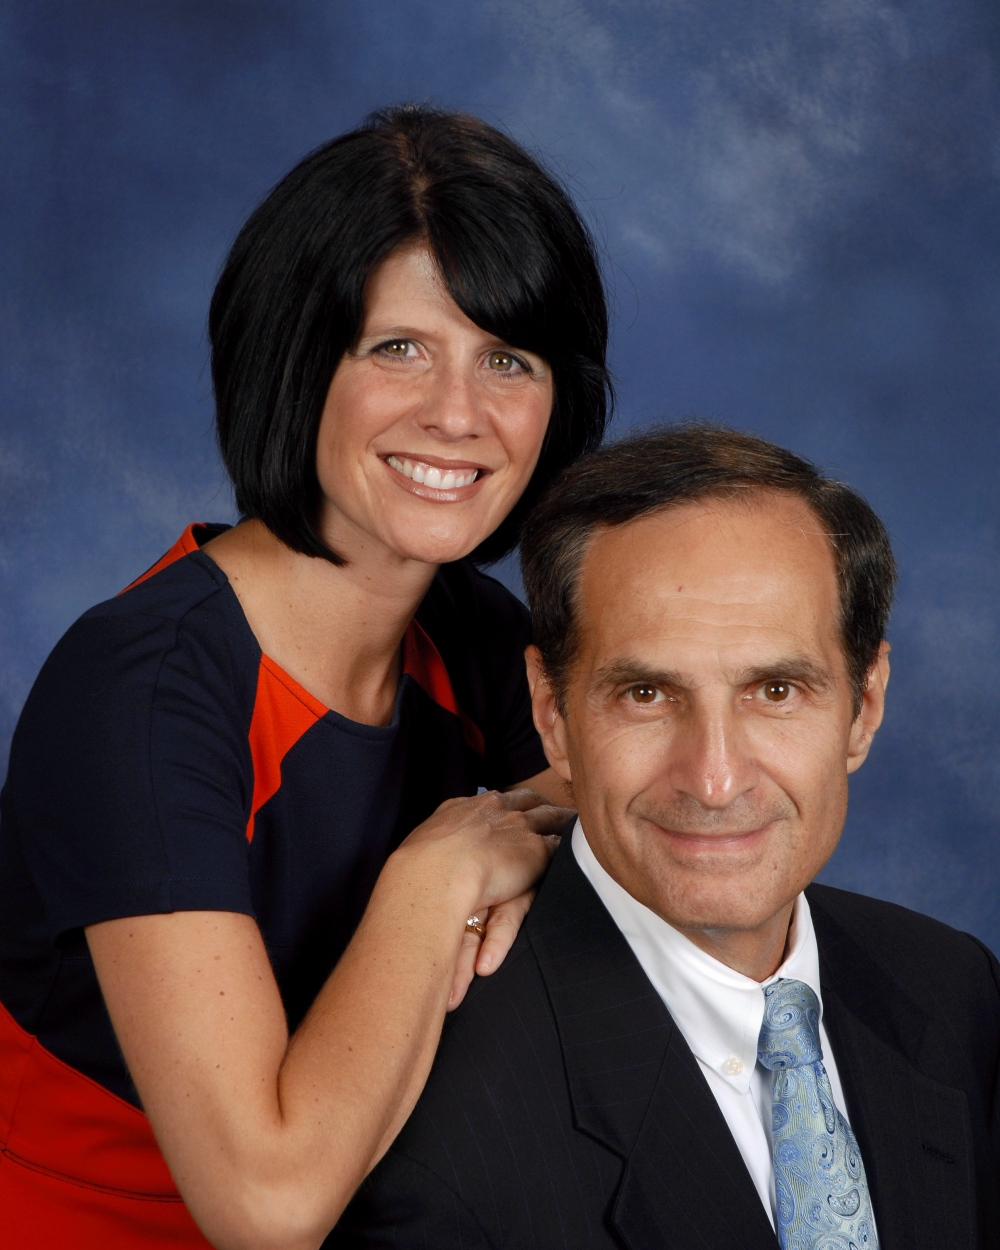 Pastor Bill and Krista Anzevino